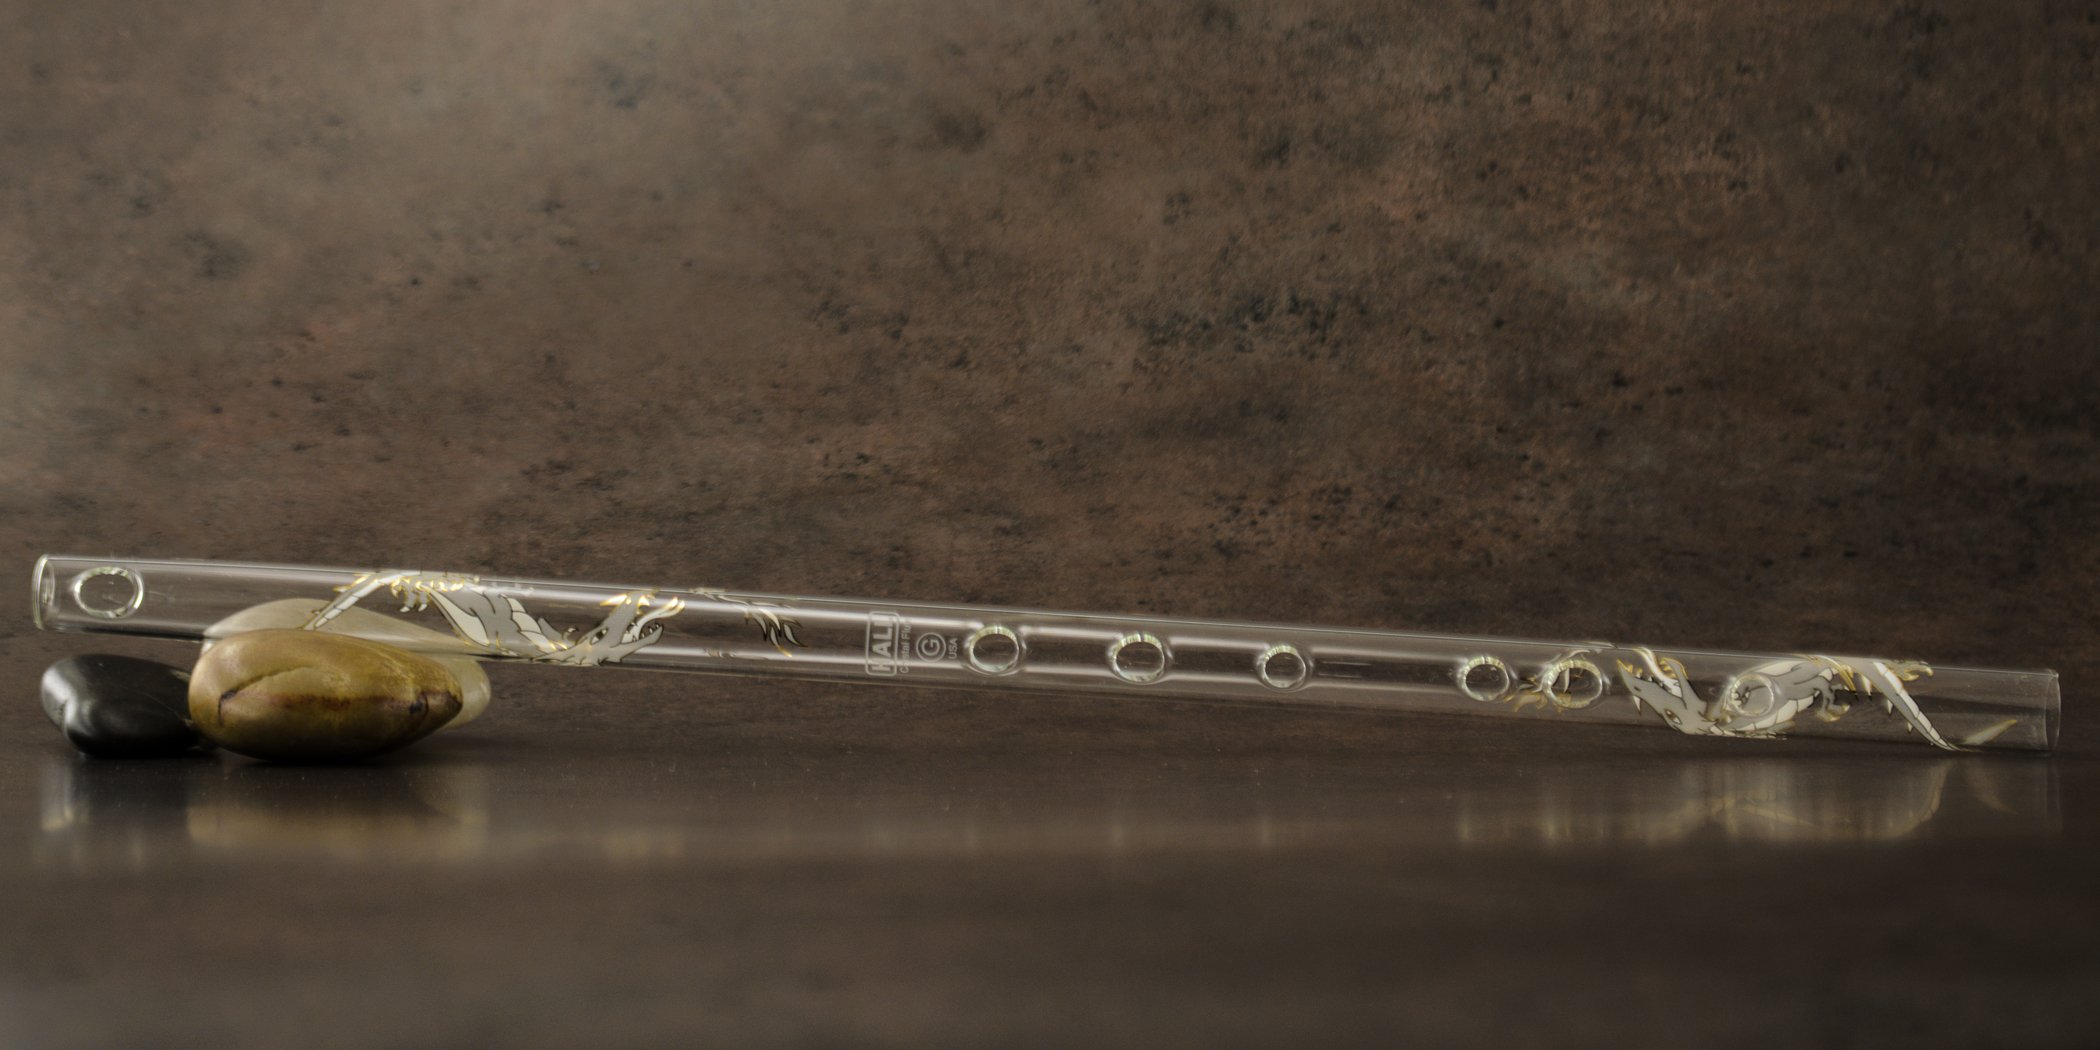 Hall Crystal Flute 11709 - Inline Glass Flute in G - White Dragon